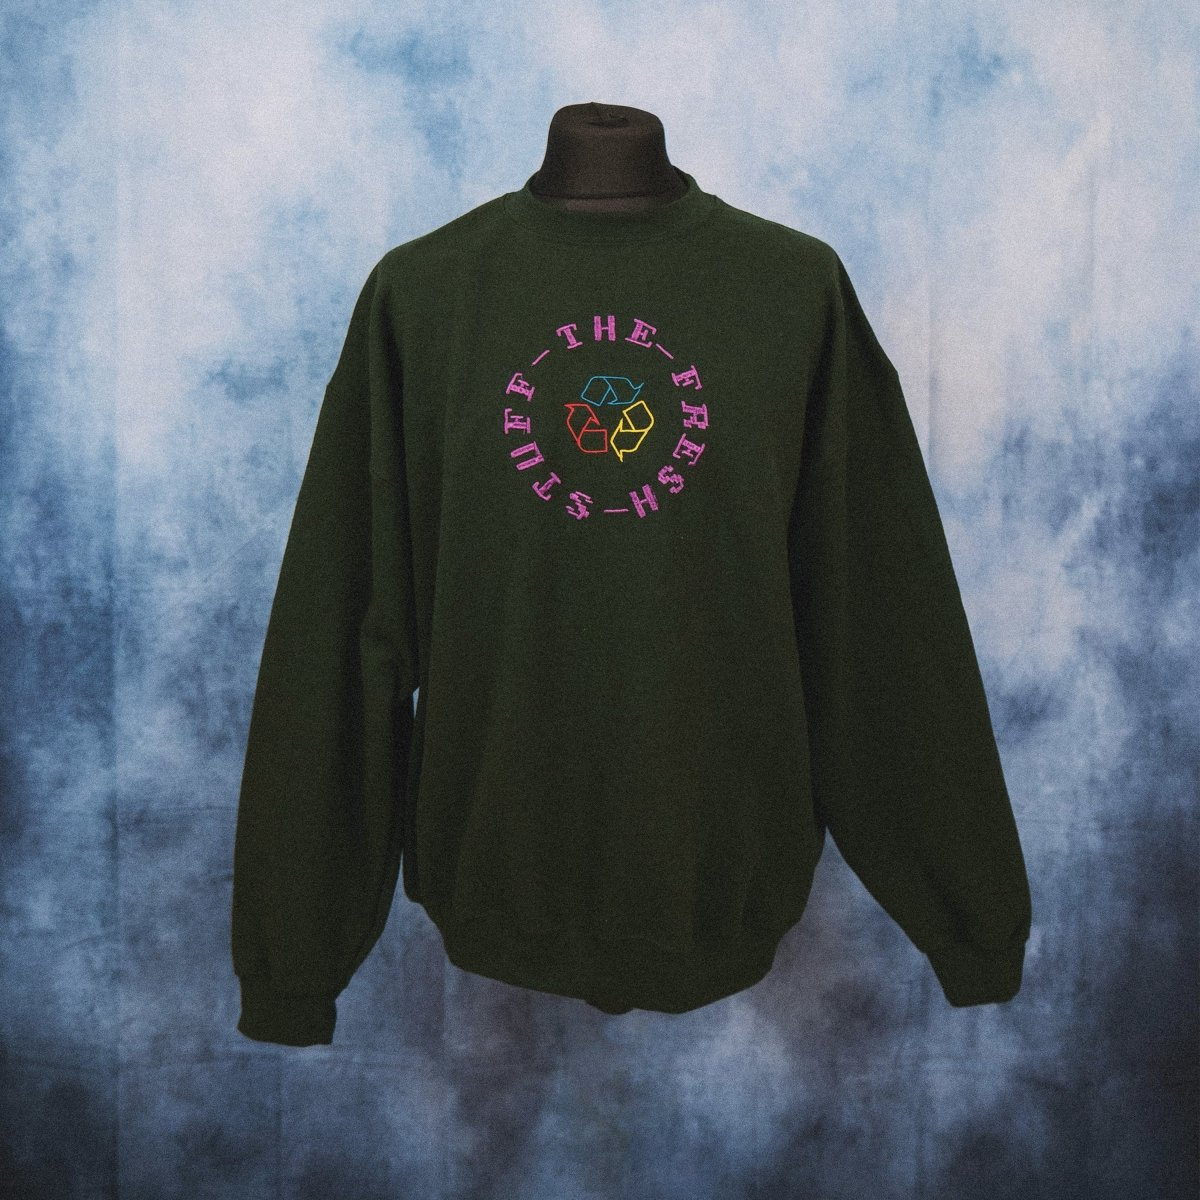 'TFS Recycling' Embroidered Sweater